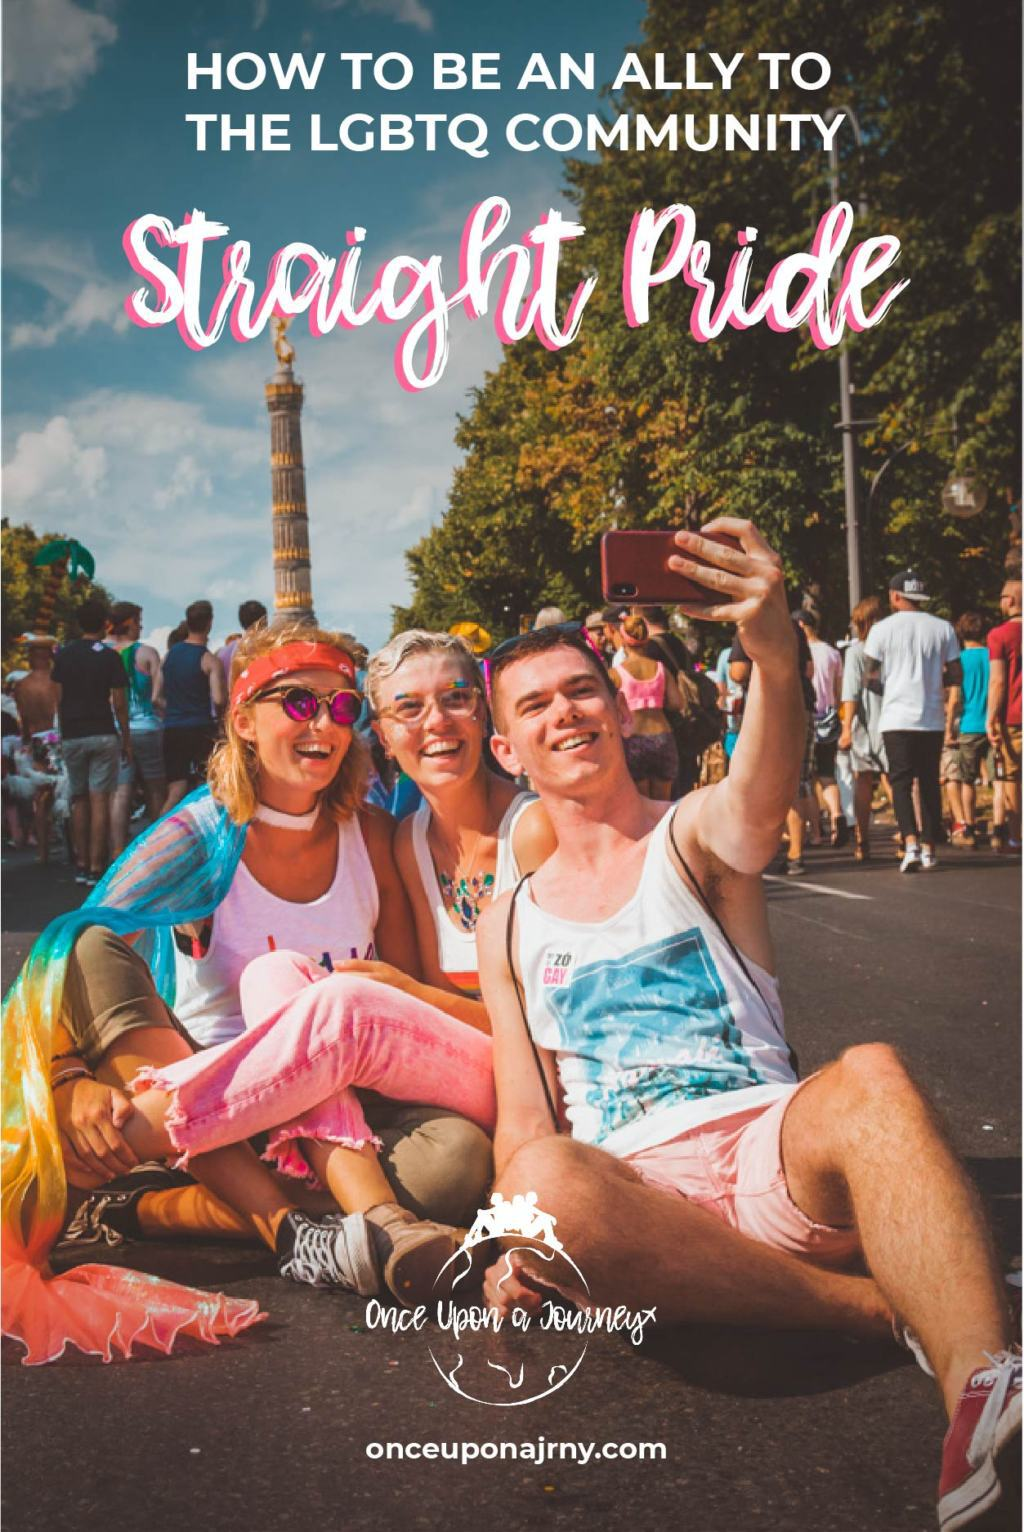 STRAIGHT PRIDE How to be an ally to the LGBTQ community